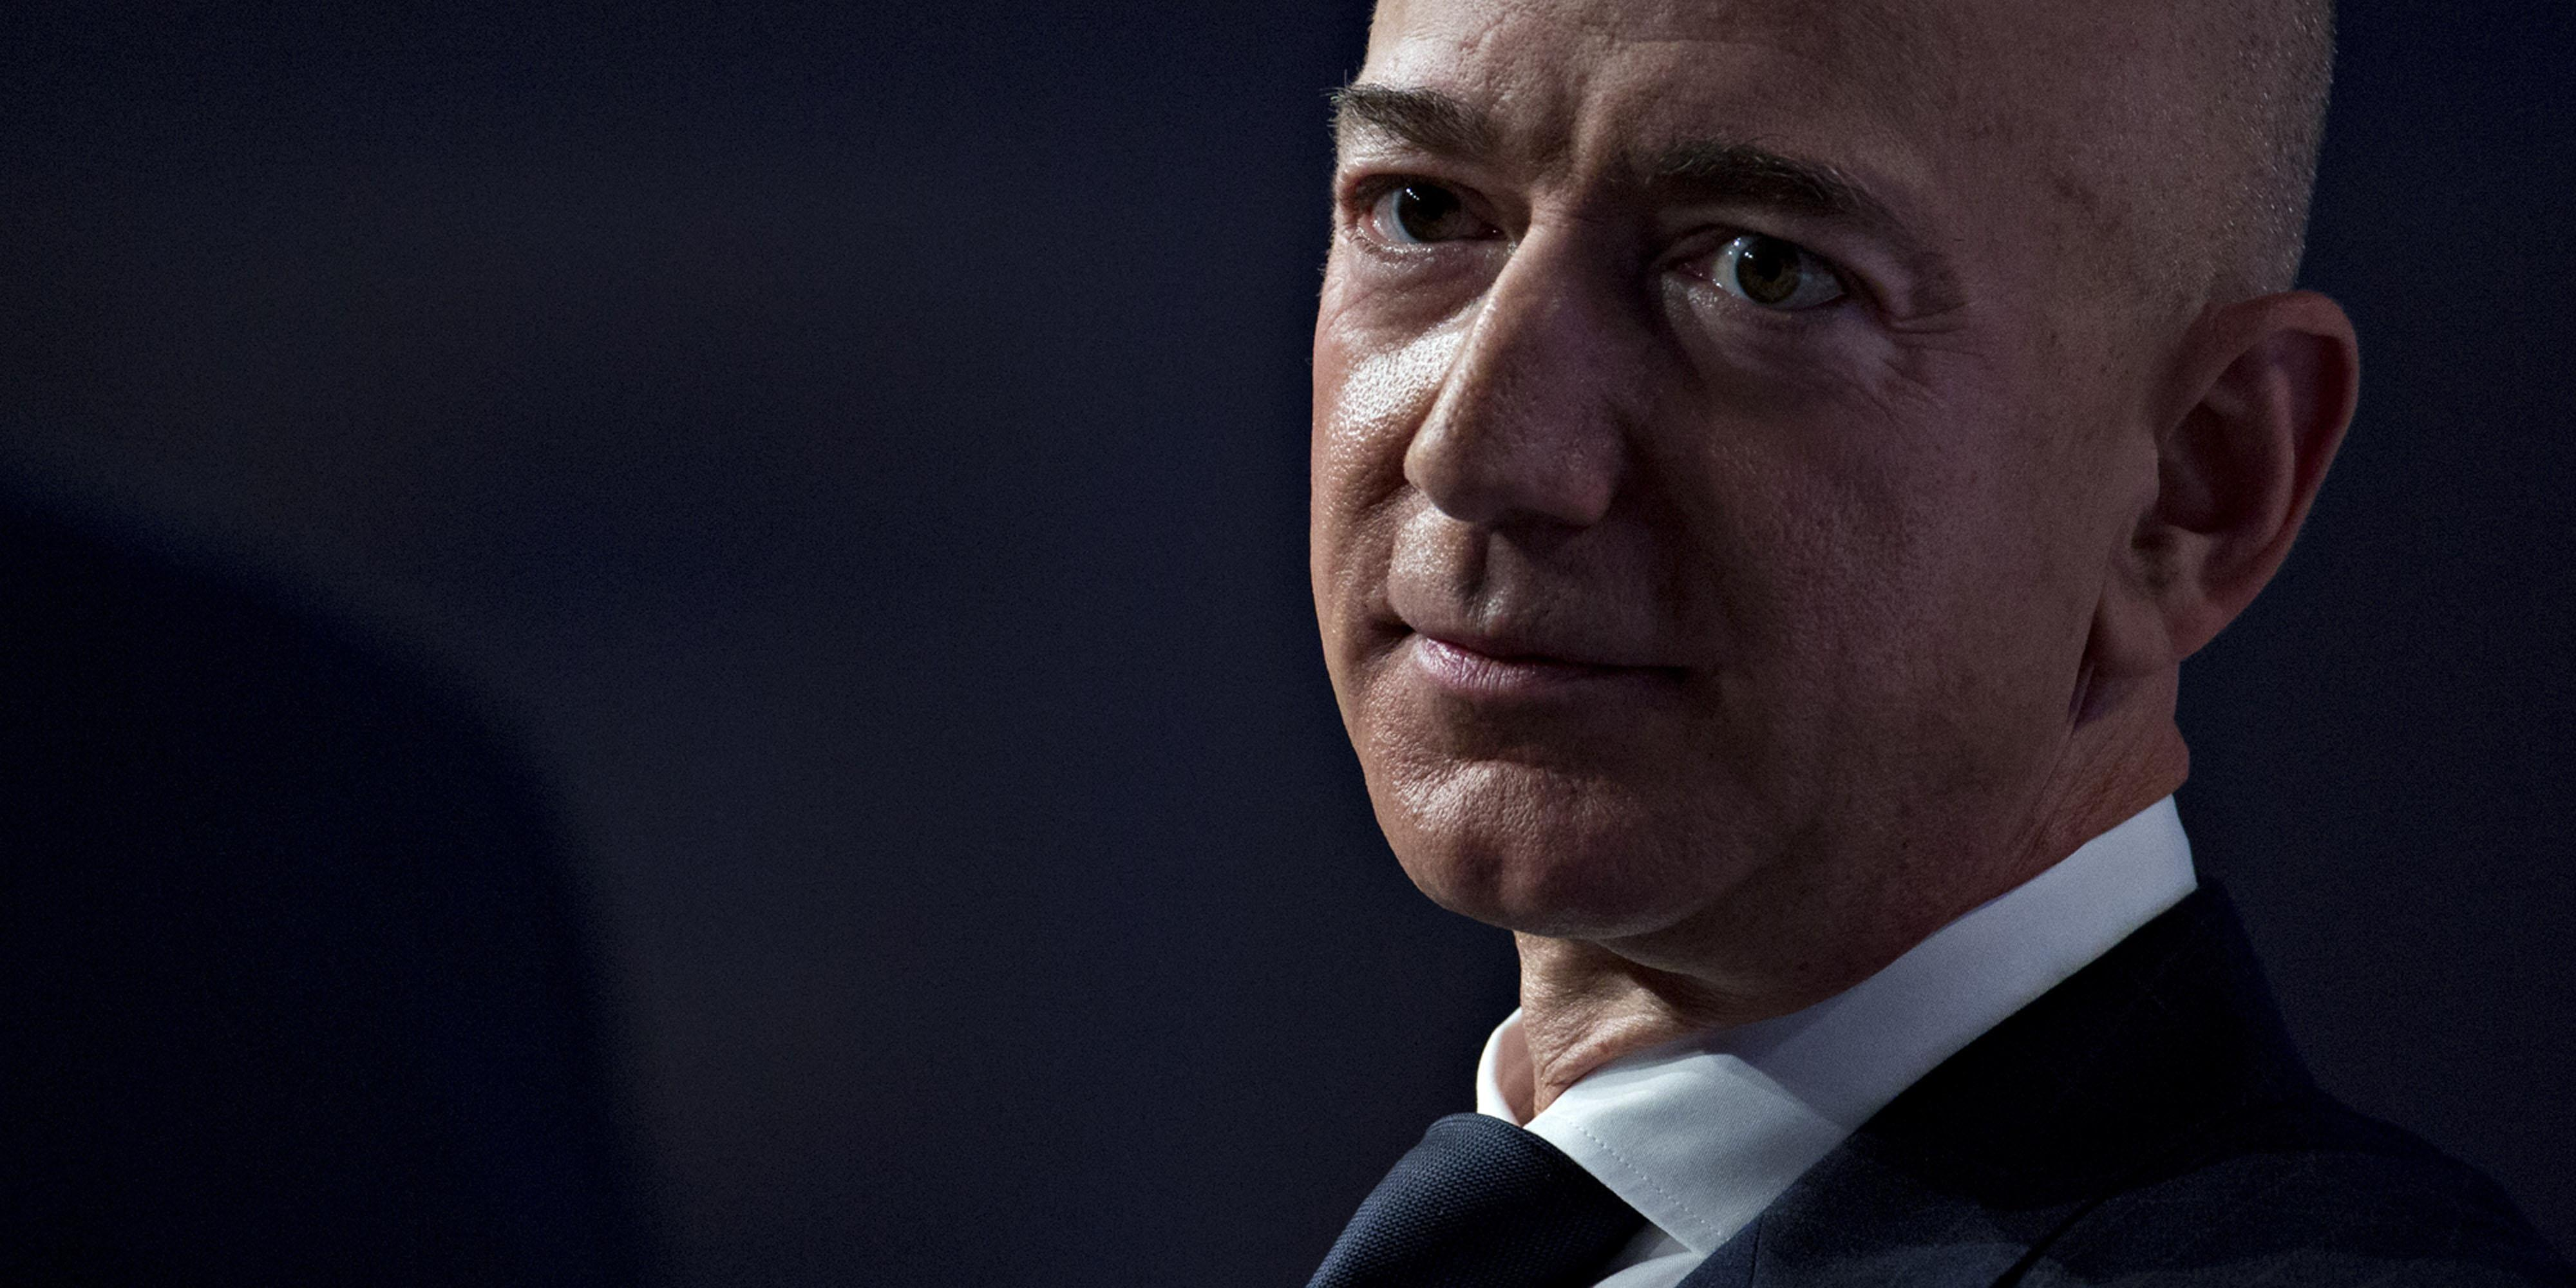 Amazon CEO Jeff Bezos accuses National Enquirer of